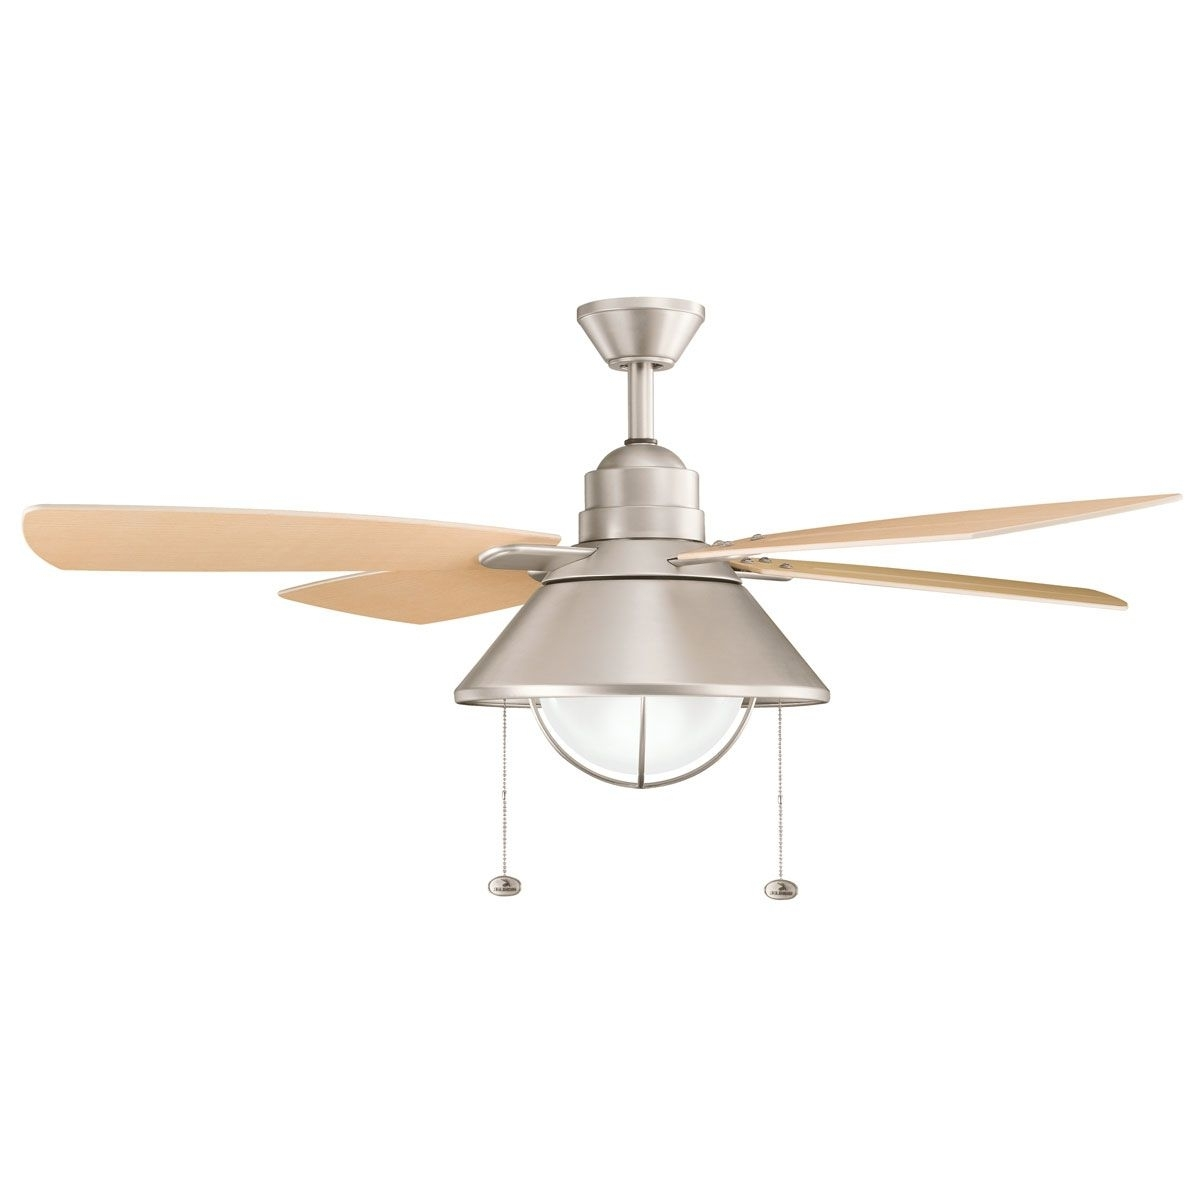 Recent Brushed Nickel Outdoor Ceiling Fans With Light With Regard To Kichler Fans Seaside Ceiling Fan In Brushed Nickel (View 16 of 20)